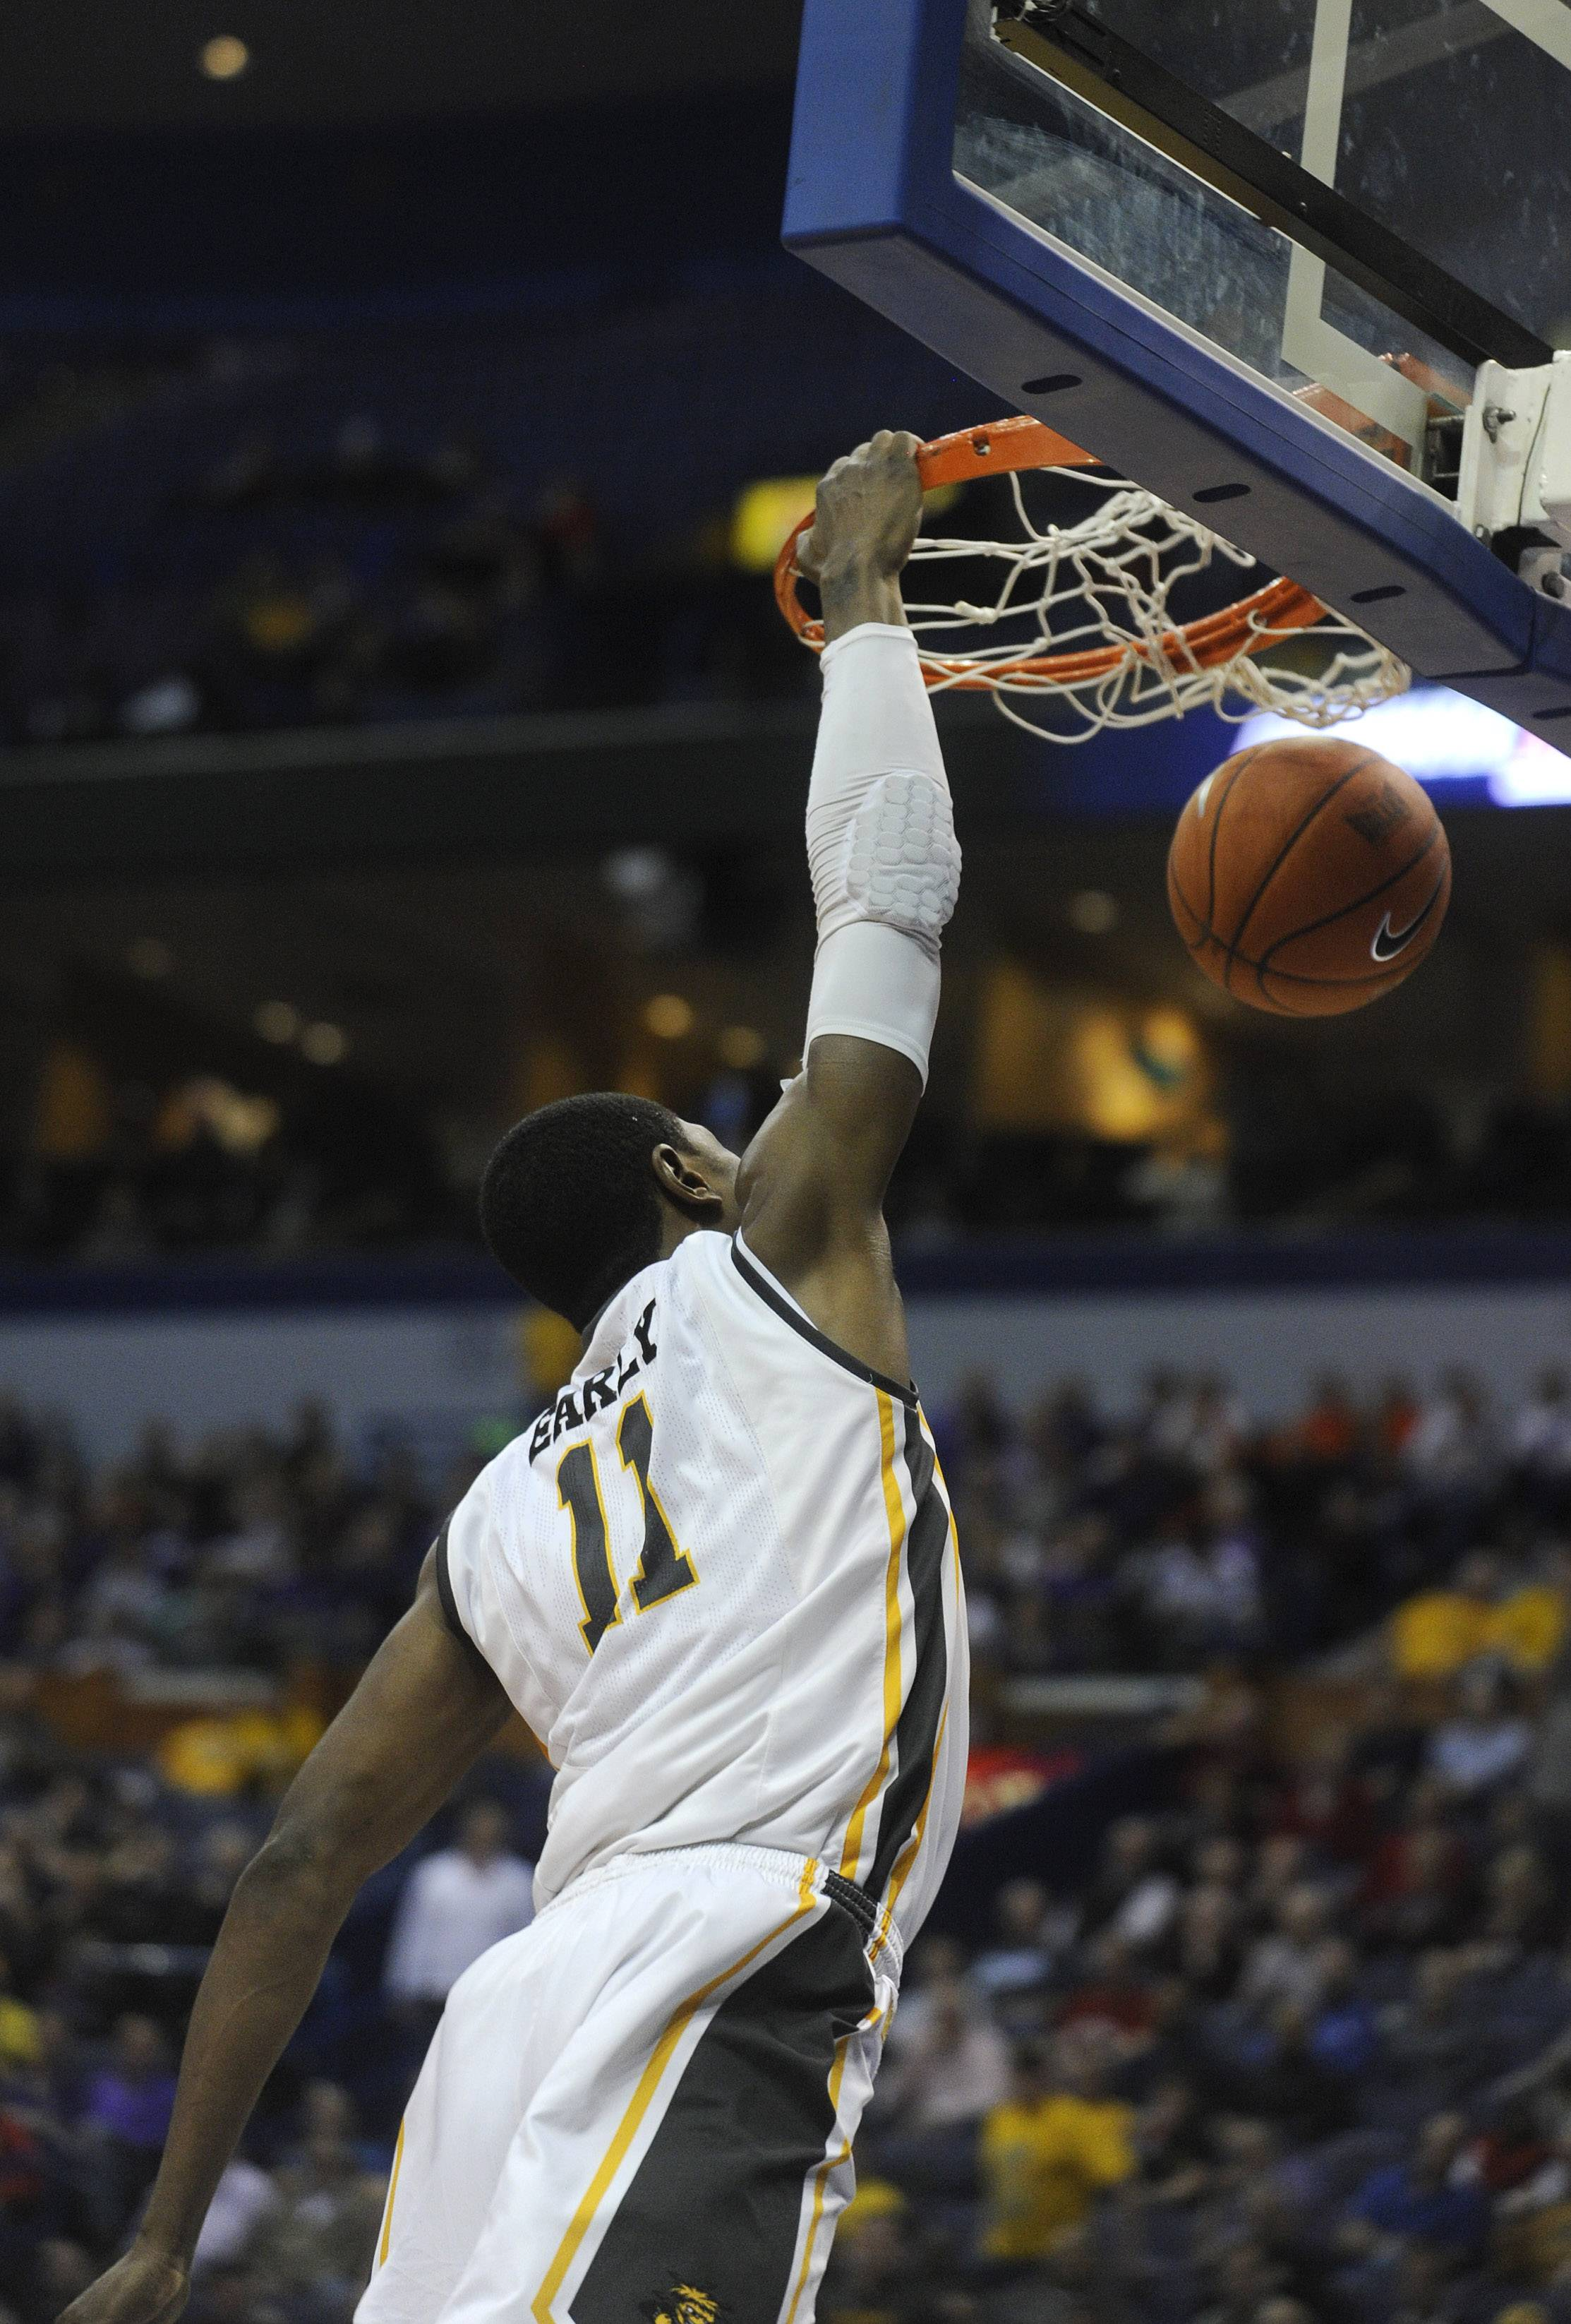 Wichita State's Cleanthony Early (11) dunks against Evansville in the second half of an NCAA college basketball game in the quarterfinals of the Missouri Valley Conference men's tournament, Friday, March 7, 2014 in St. Louis. (AP Photo/Bill Boyce)